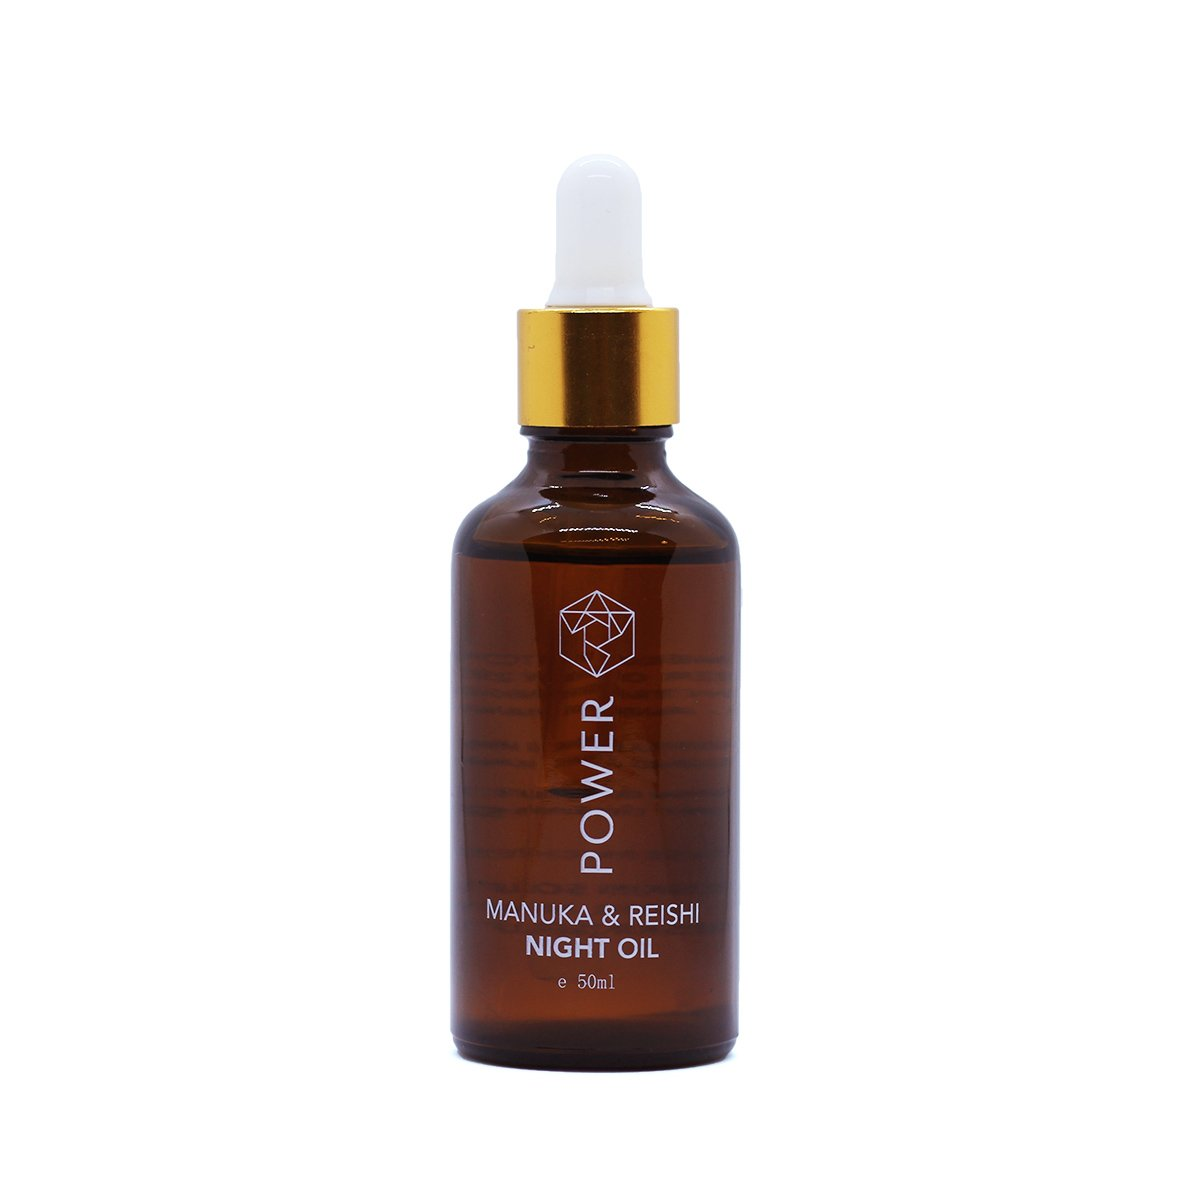 Manuka & Reishi Night Oil